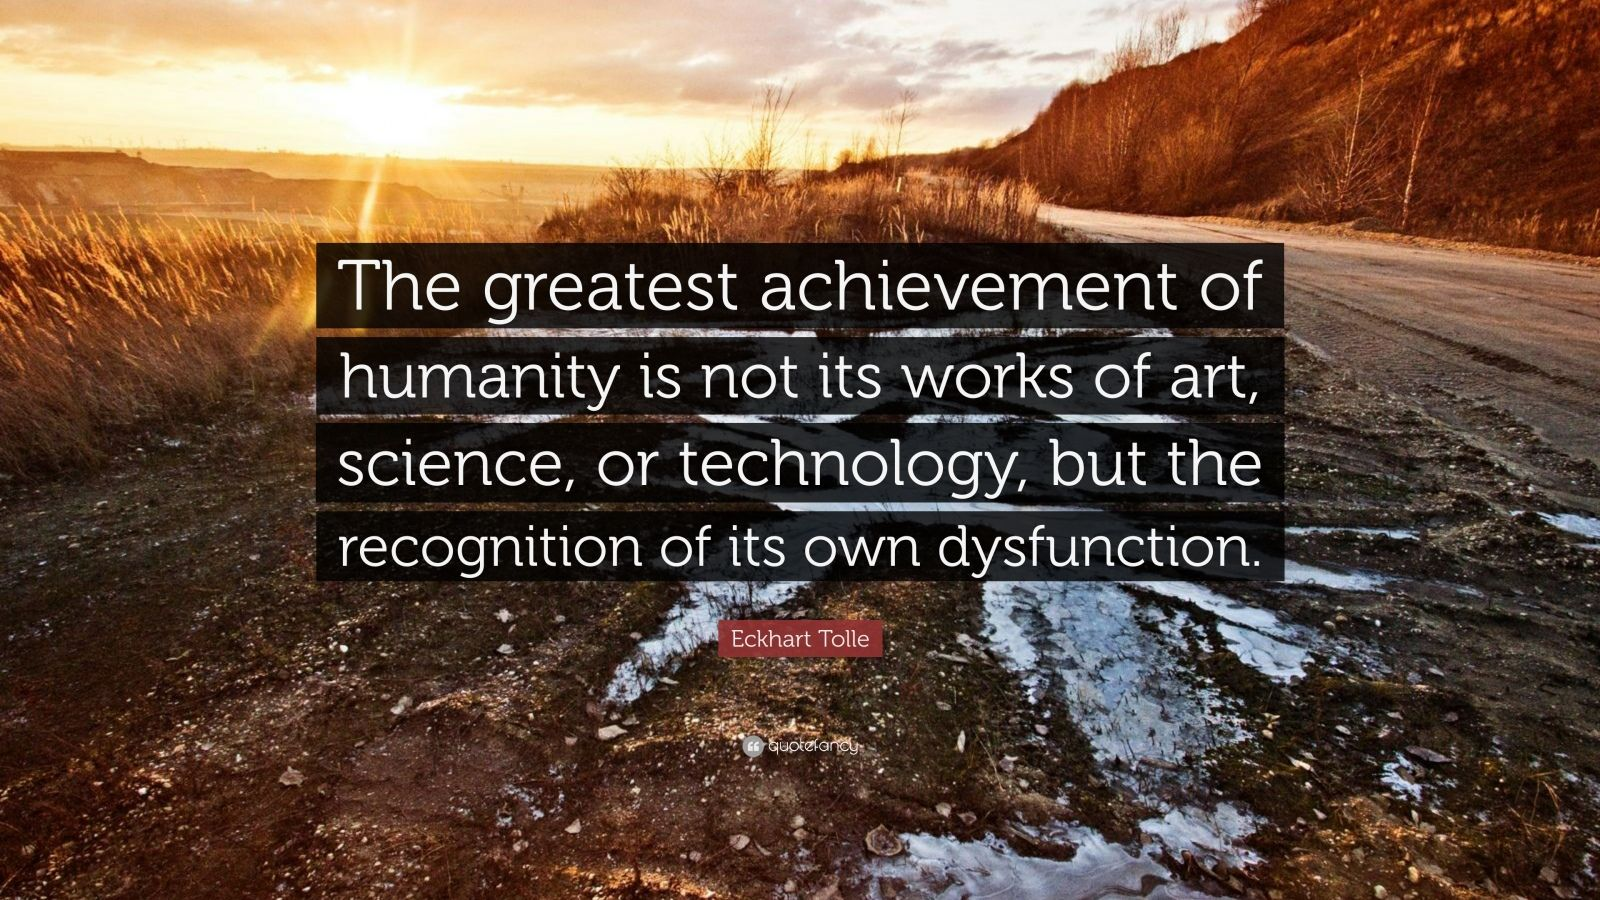 """Eckhart Tolle Quote: """"The greatest achievement of humanity is not its works of art, science, or technology, but the recognition of its own dysfunction."""""""